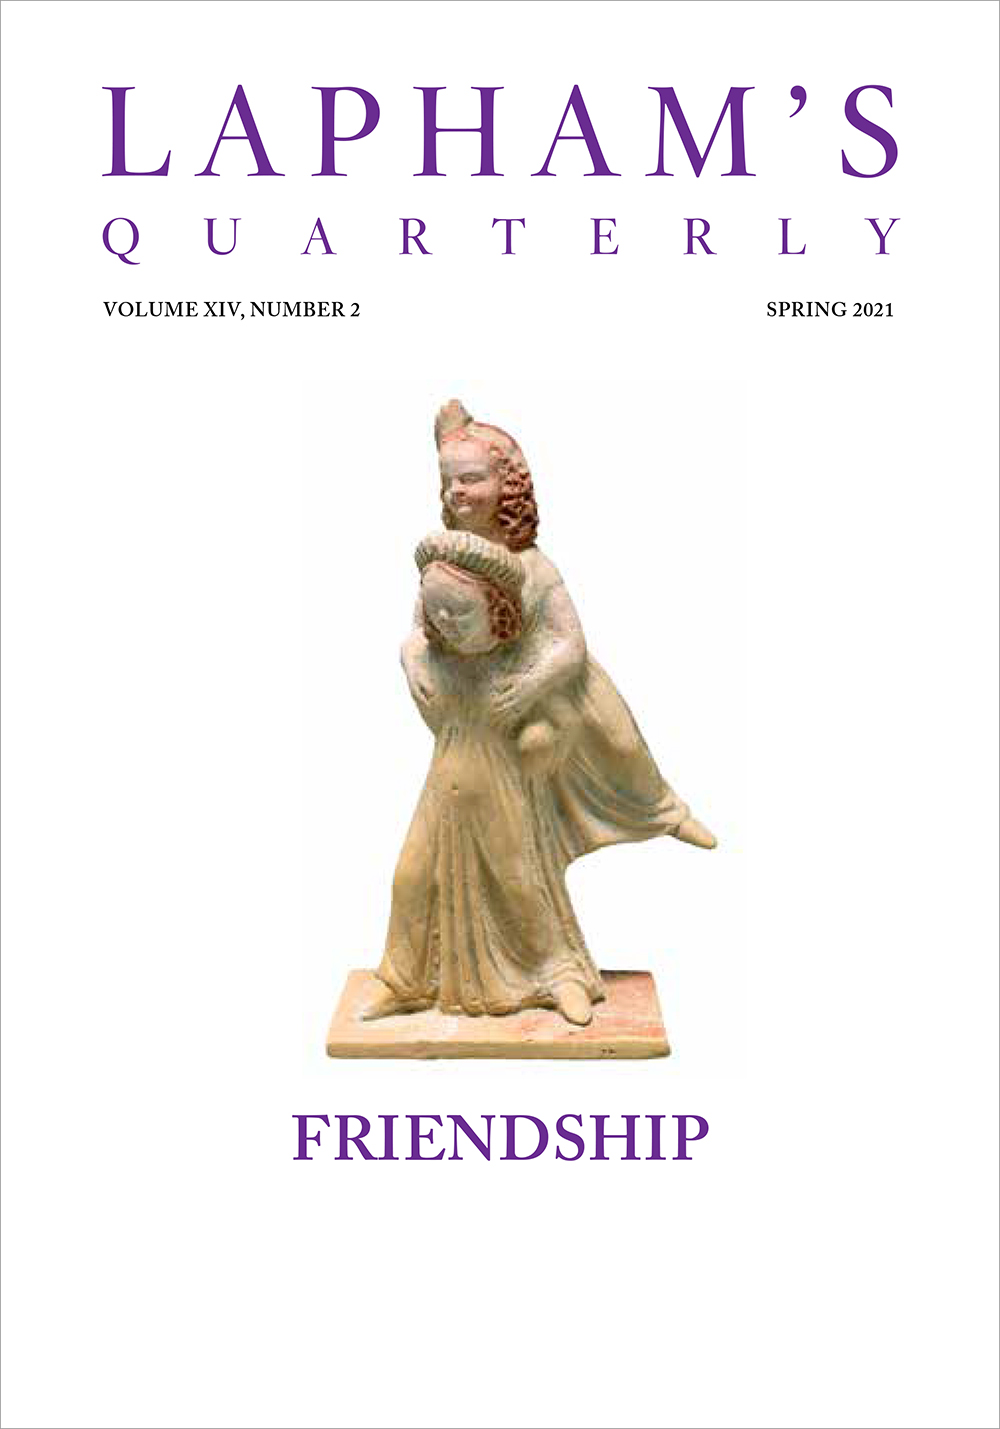 Cover of Friendship issue of Lapham's Quarterly